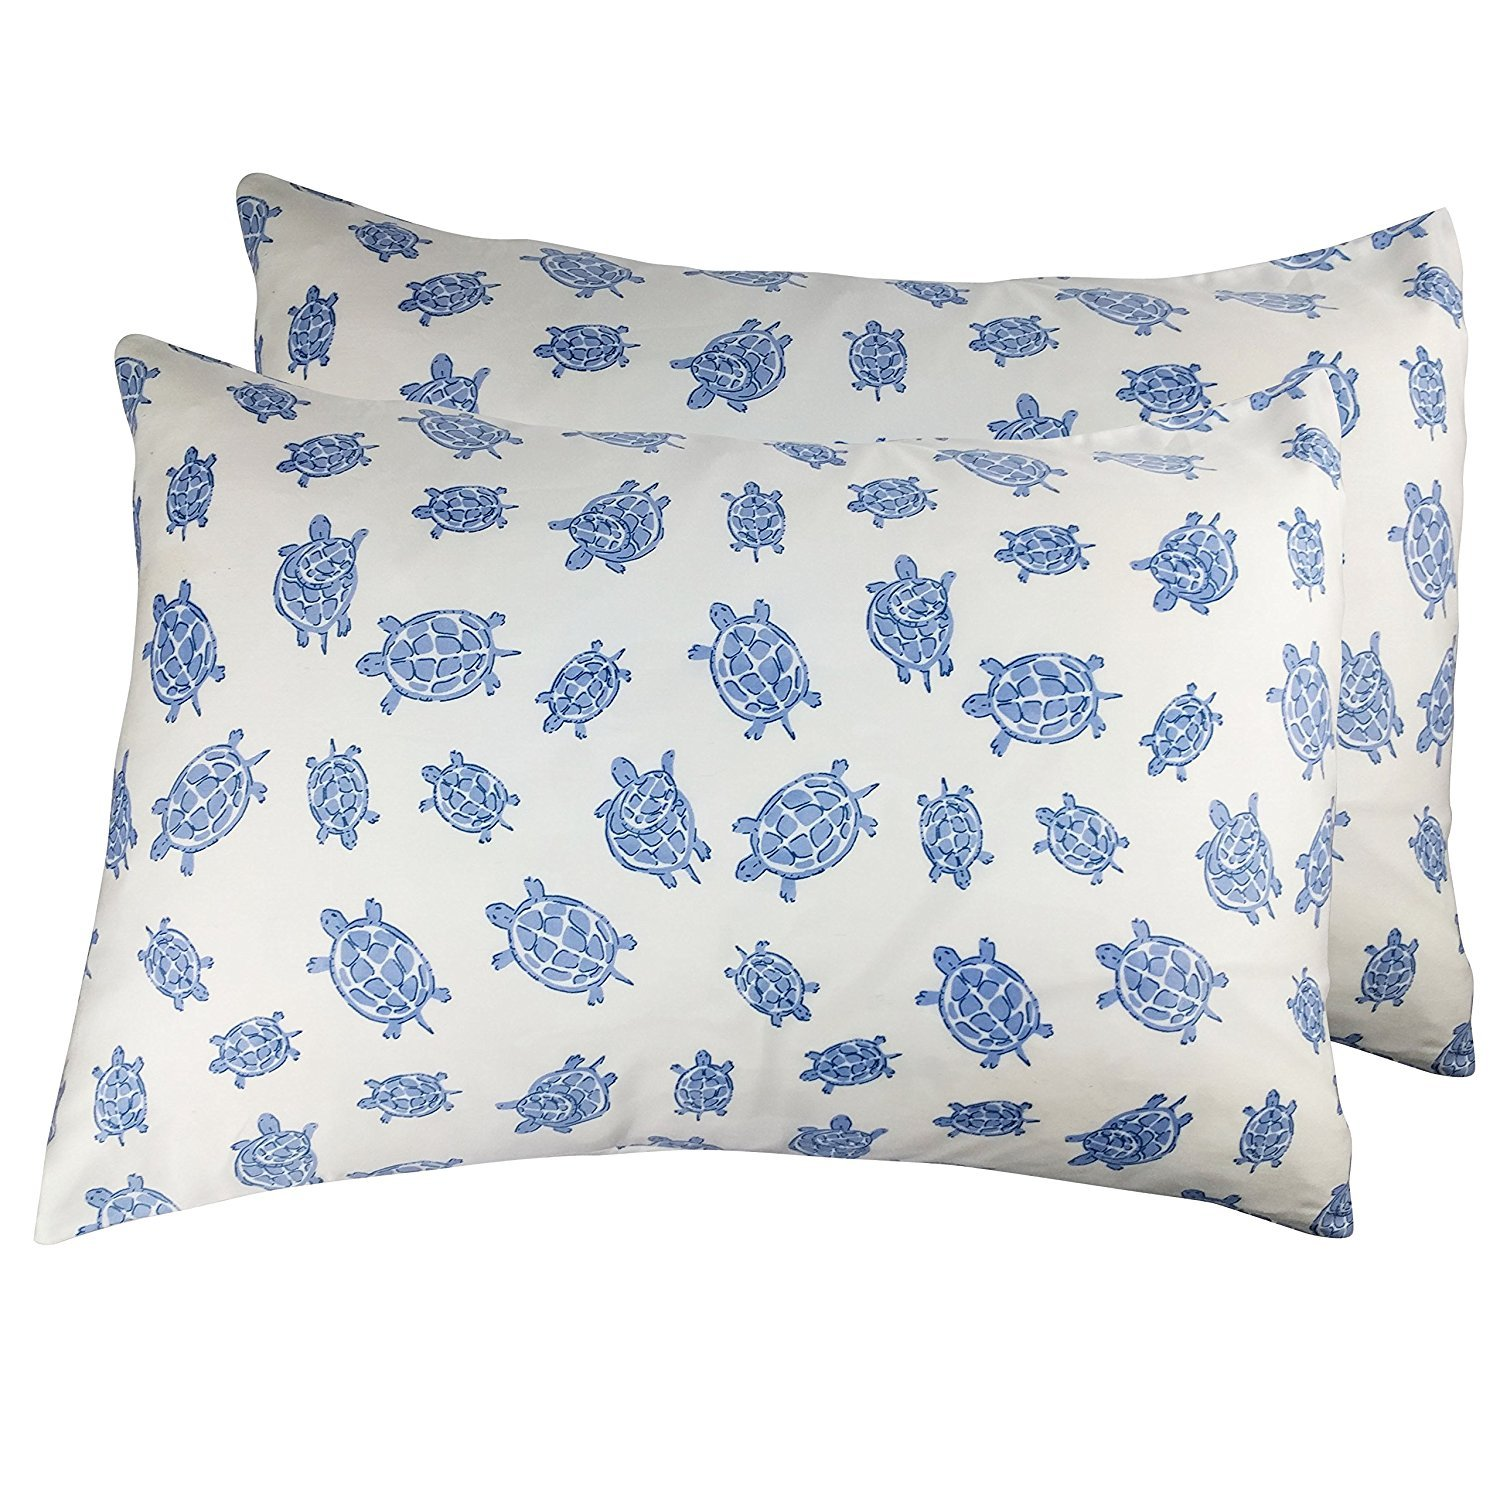 Green Turtle Print 2 Toddler or Travel Pillowcases in Organic Cotton to Fit 13 x 18 and 14 x 19 Pillow